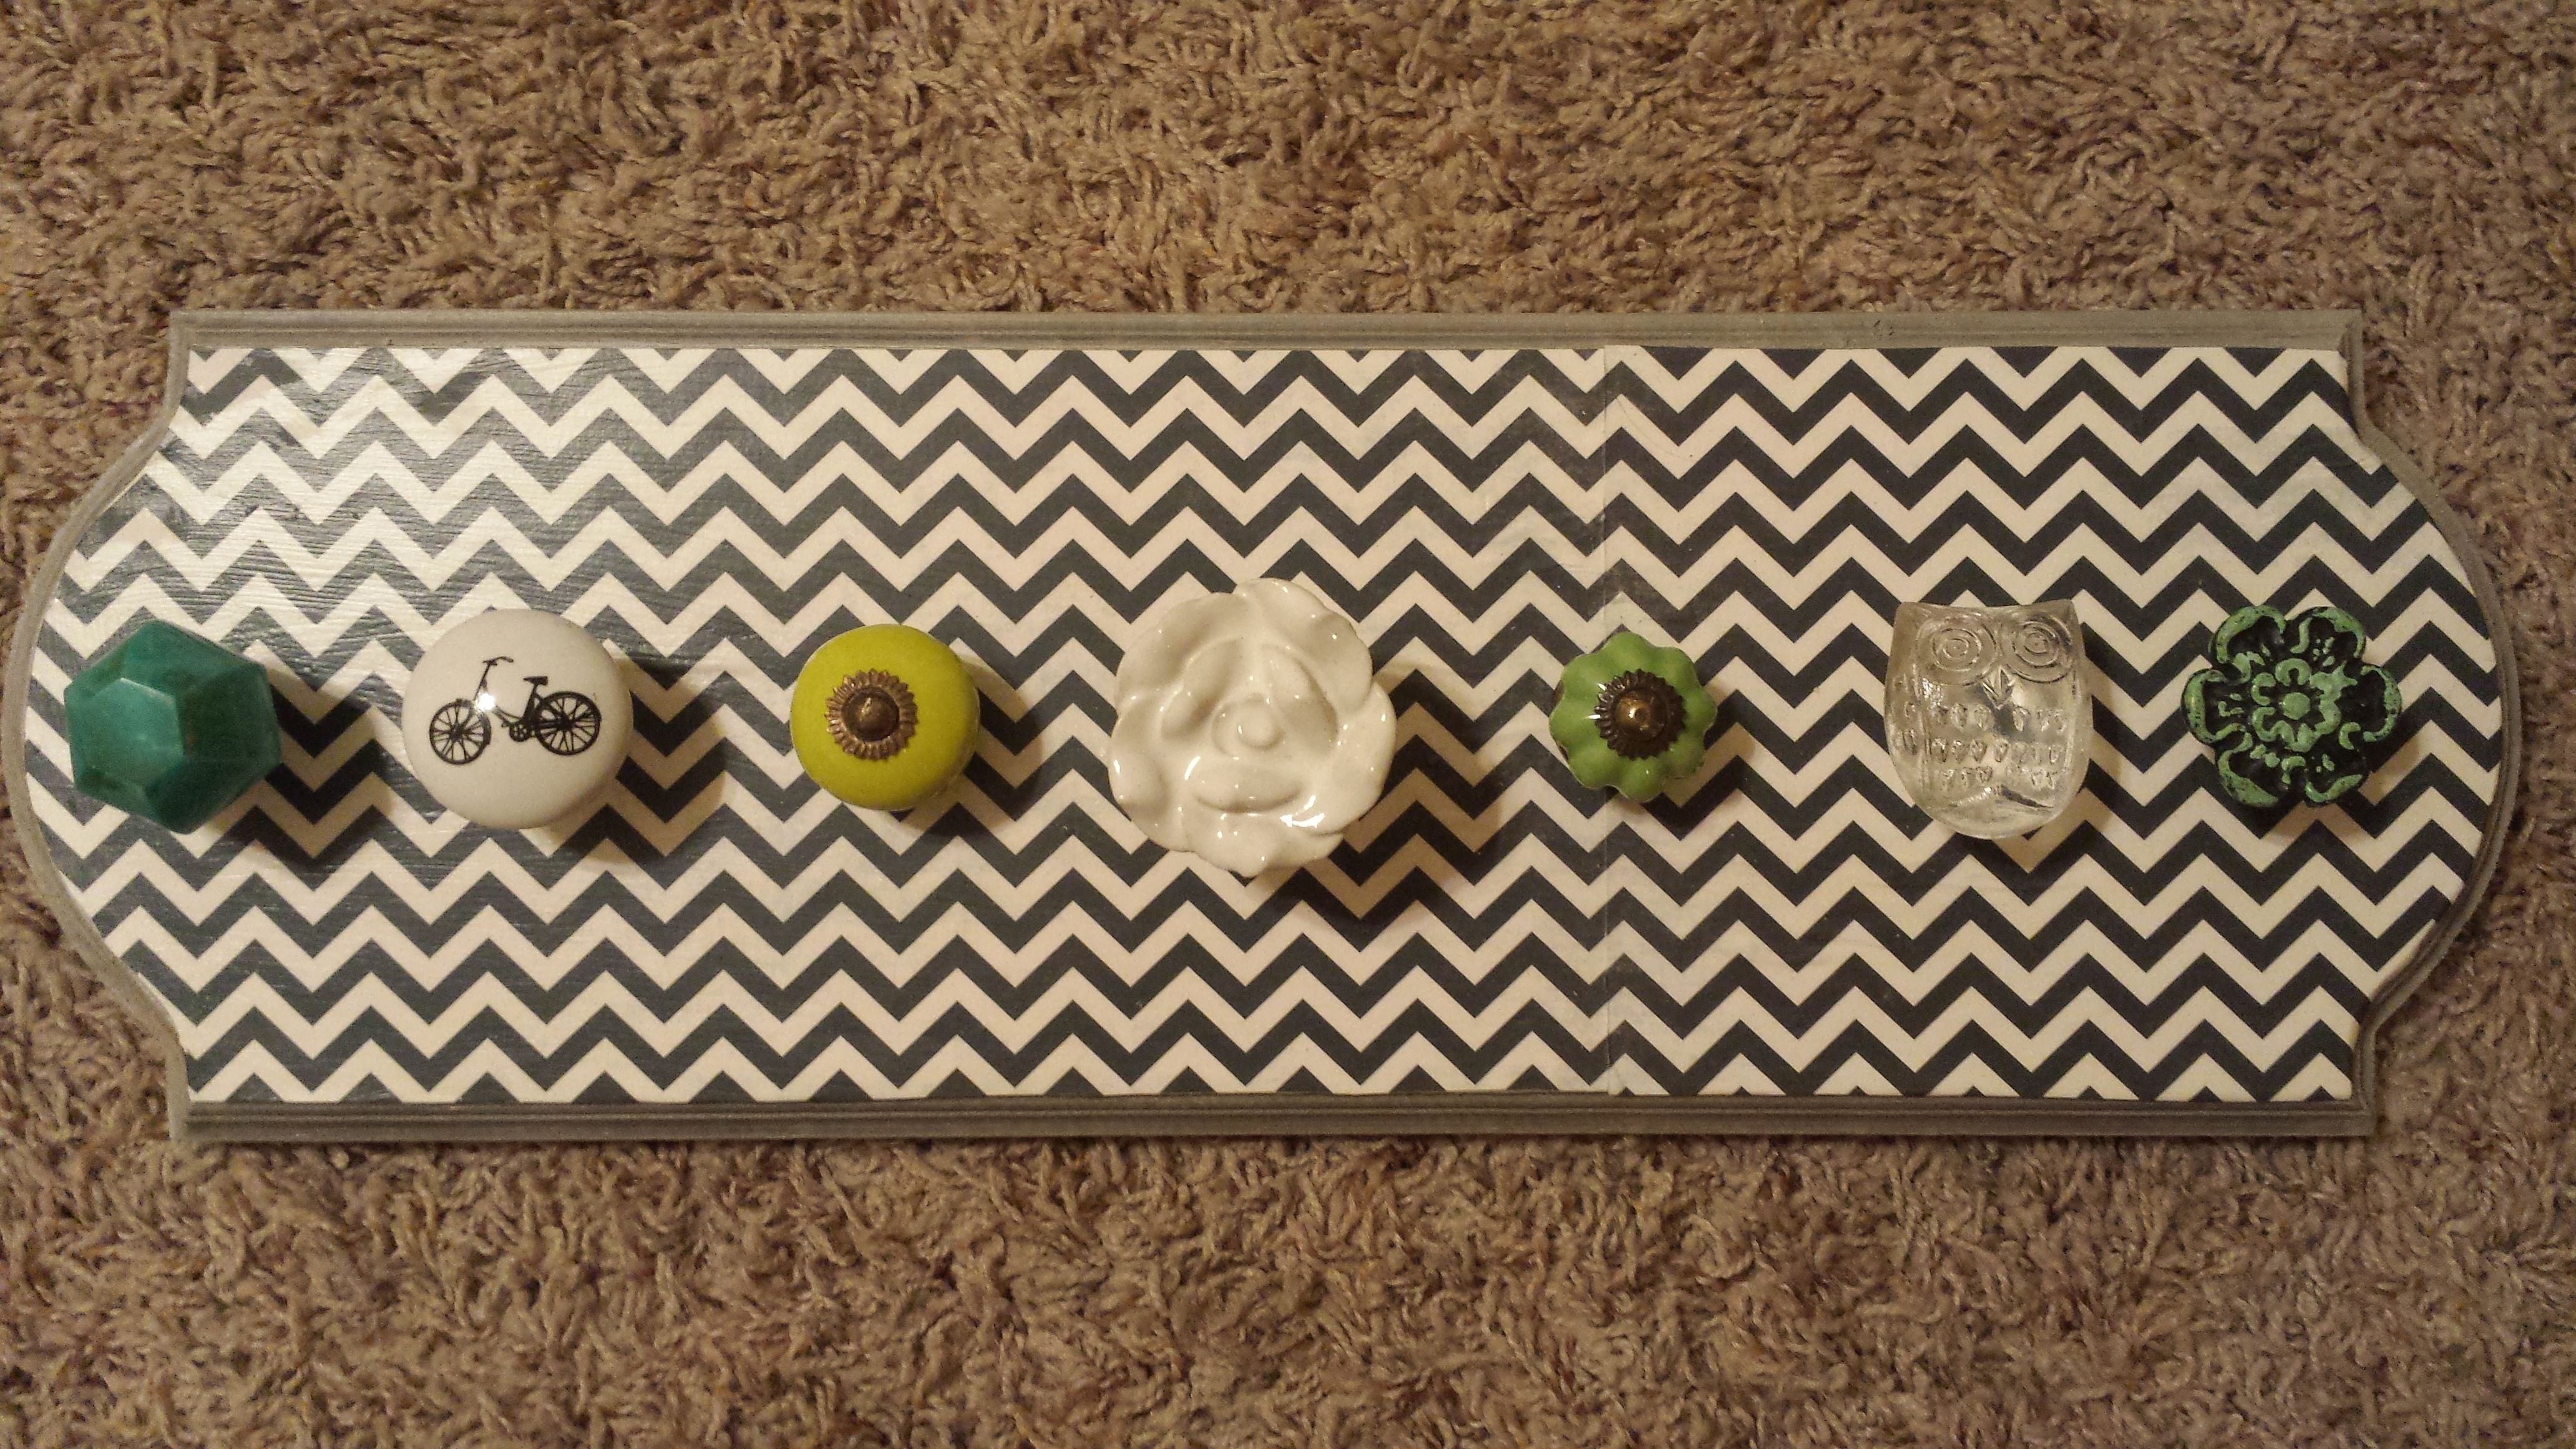 DIY: DoorKnob Necklace Holder. Fun and easy! materials include: board of some kind, paint (if you want to paint it), knobs (try Hobby Lobby), drill (too make the holds), brackets (to hang it up), and a little saw (to cut off the ends of the knobs), then add your necklaces!!!!